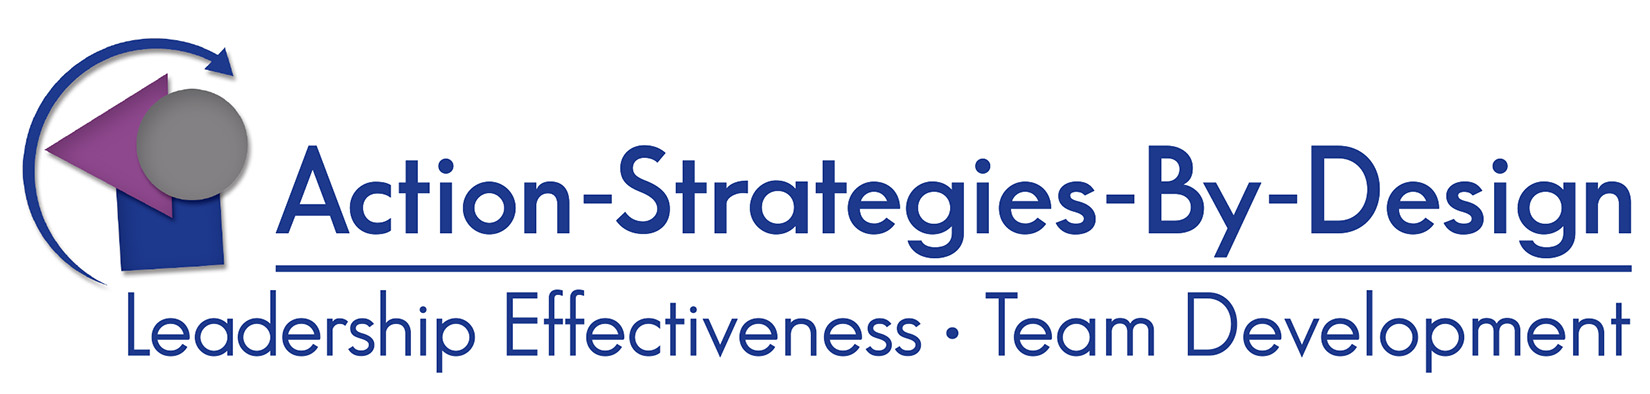 Action-Strategies-By-Design Logo